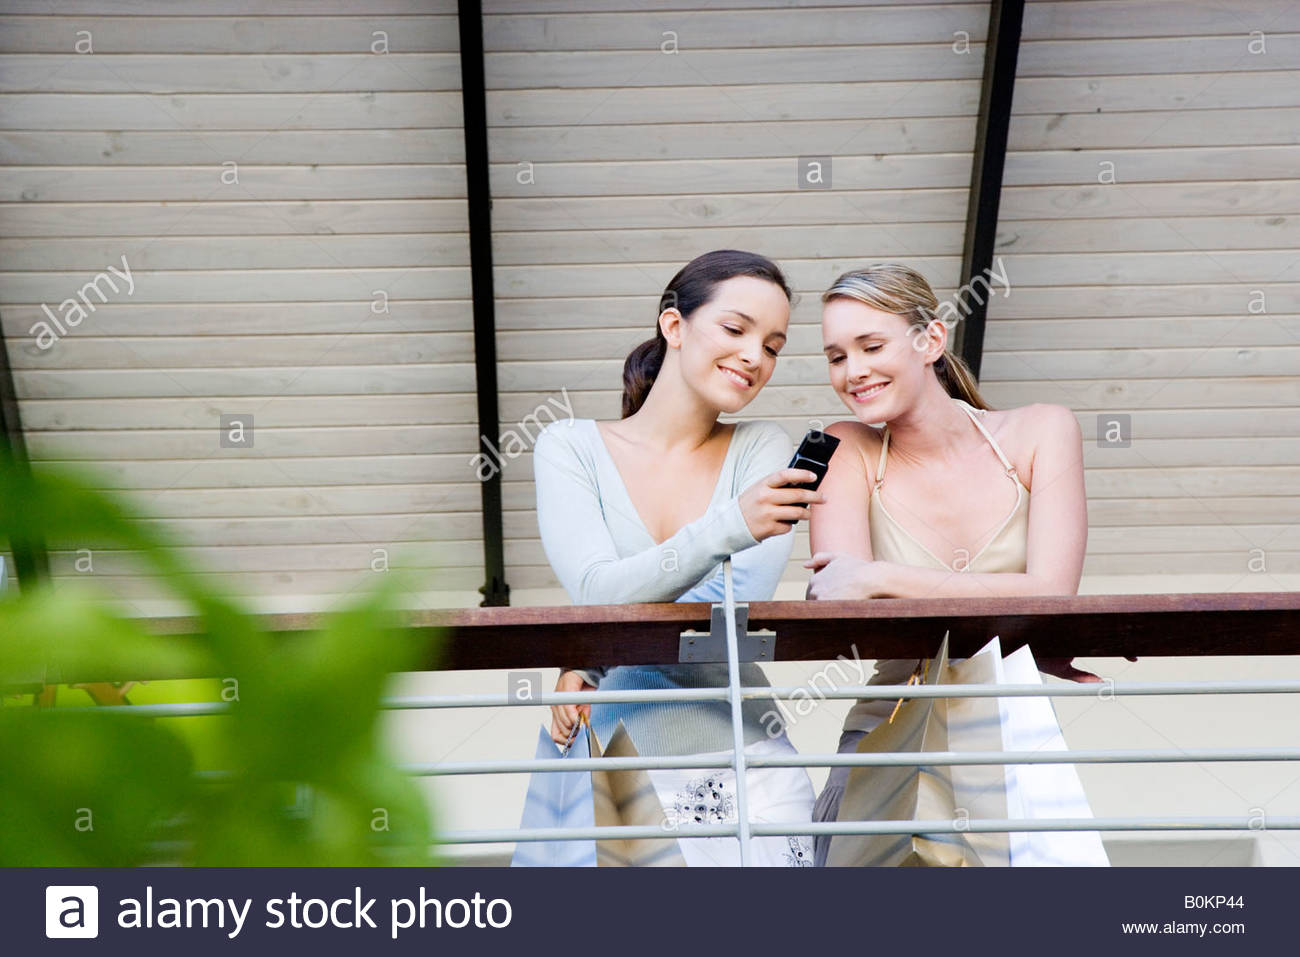 Two women on a balcony looking at a mobile phone - Stock Image